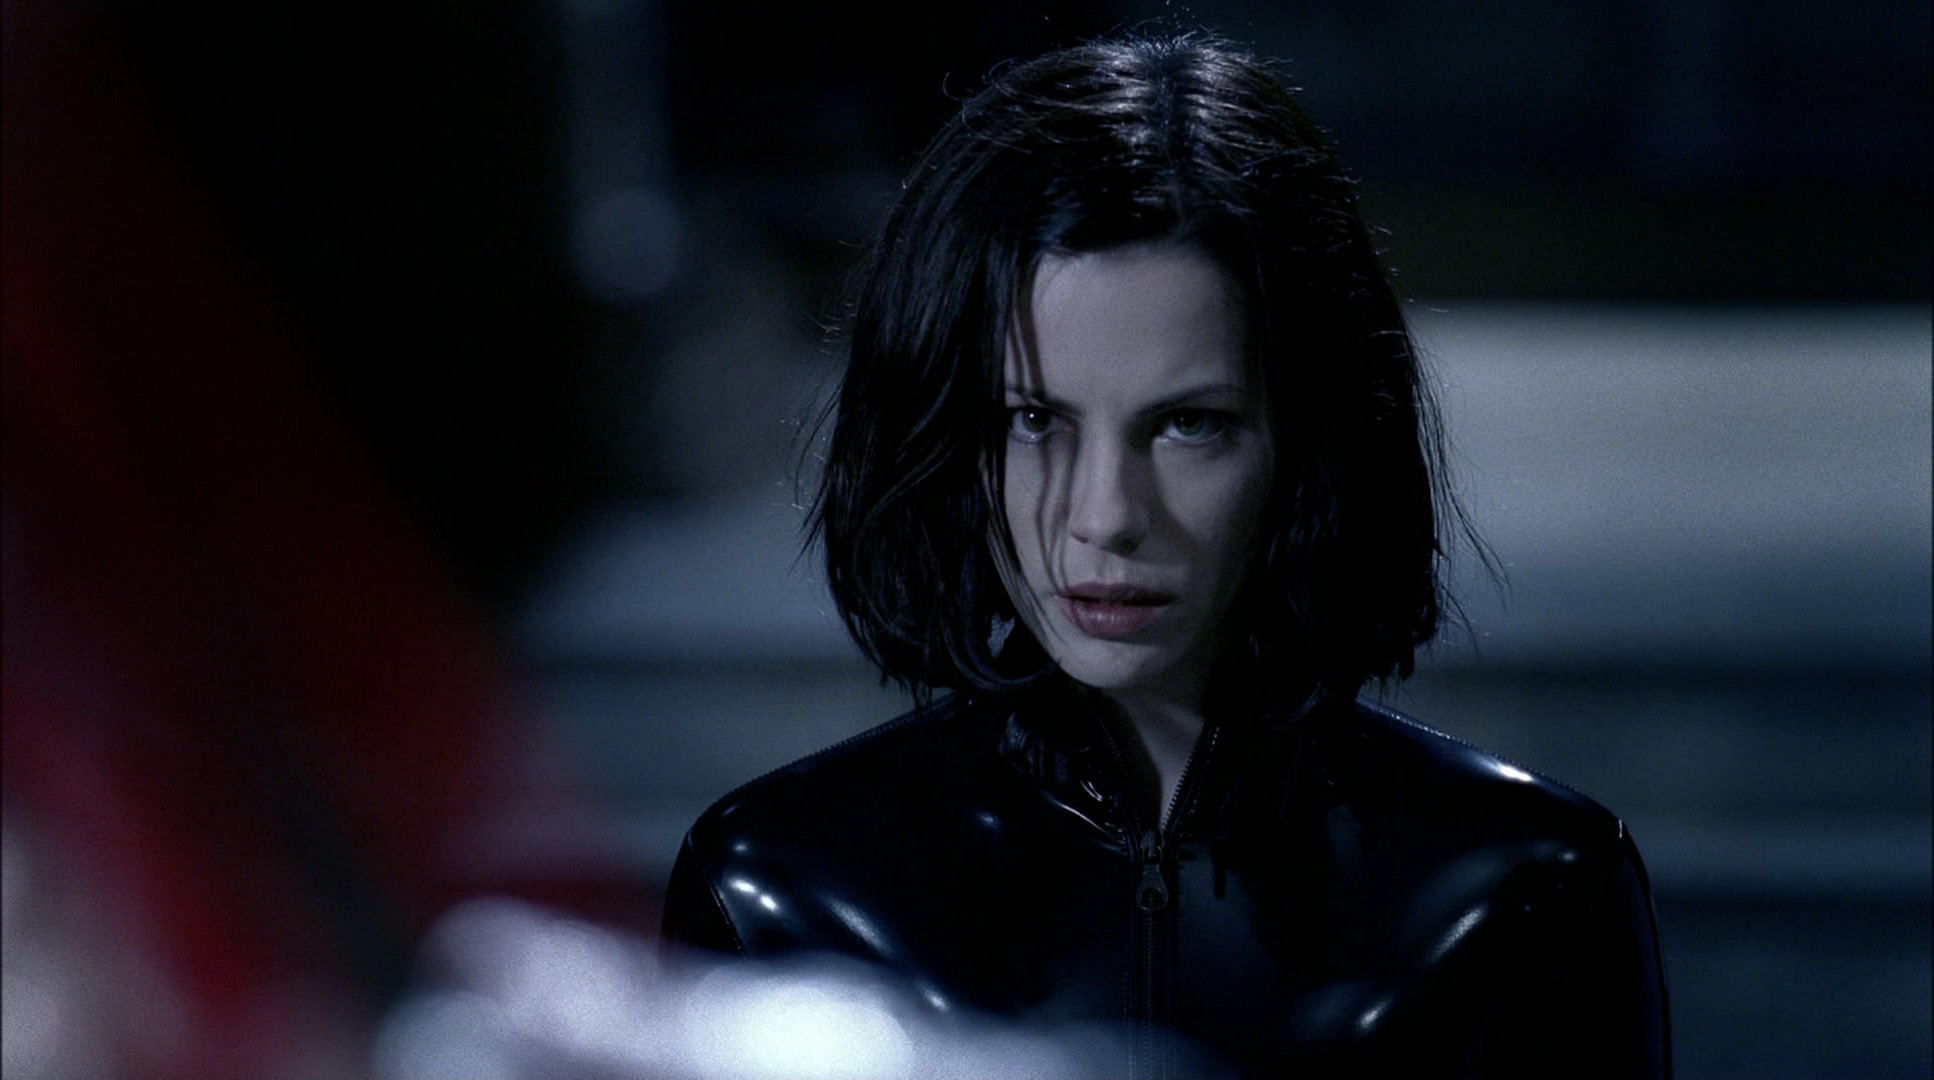 Underworld: Awakening Blu-ray Pictures of selene from underworld